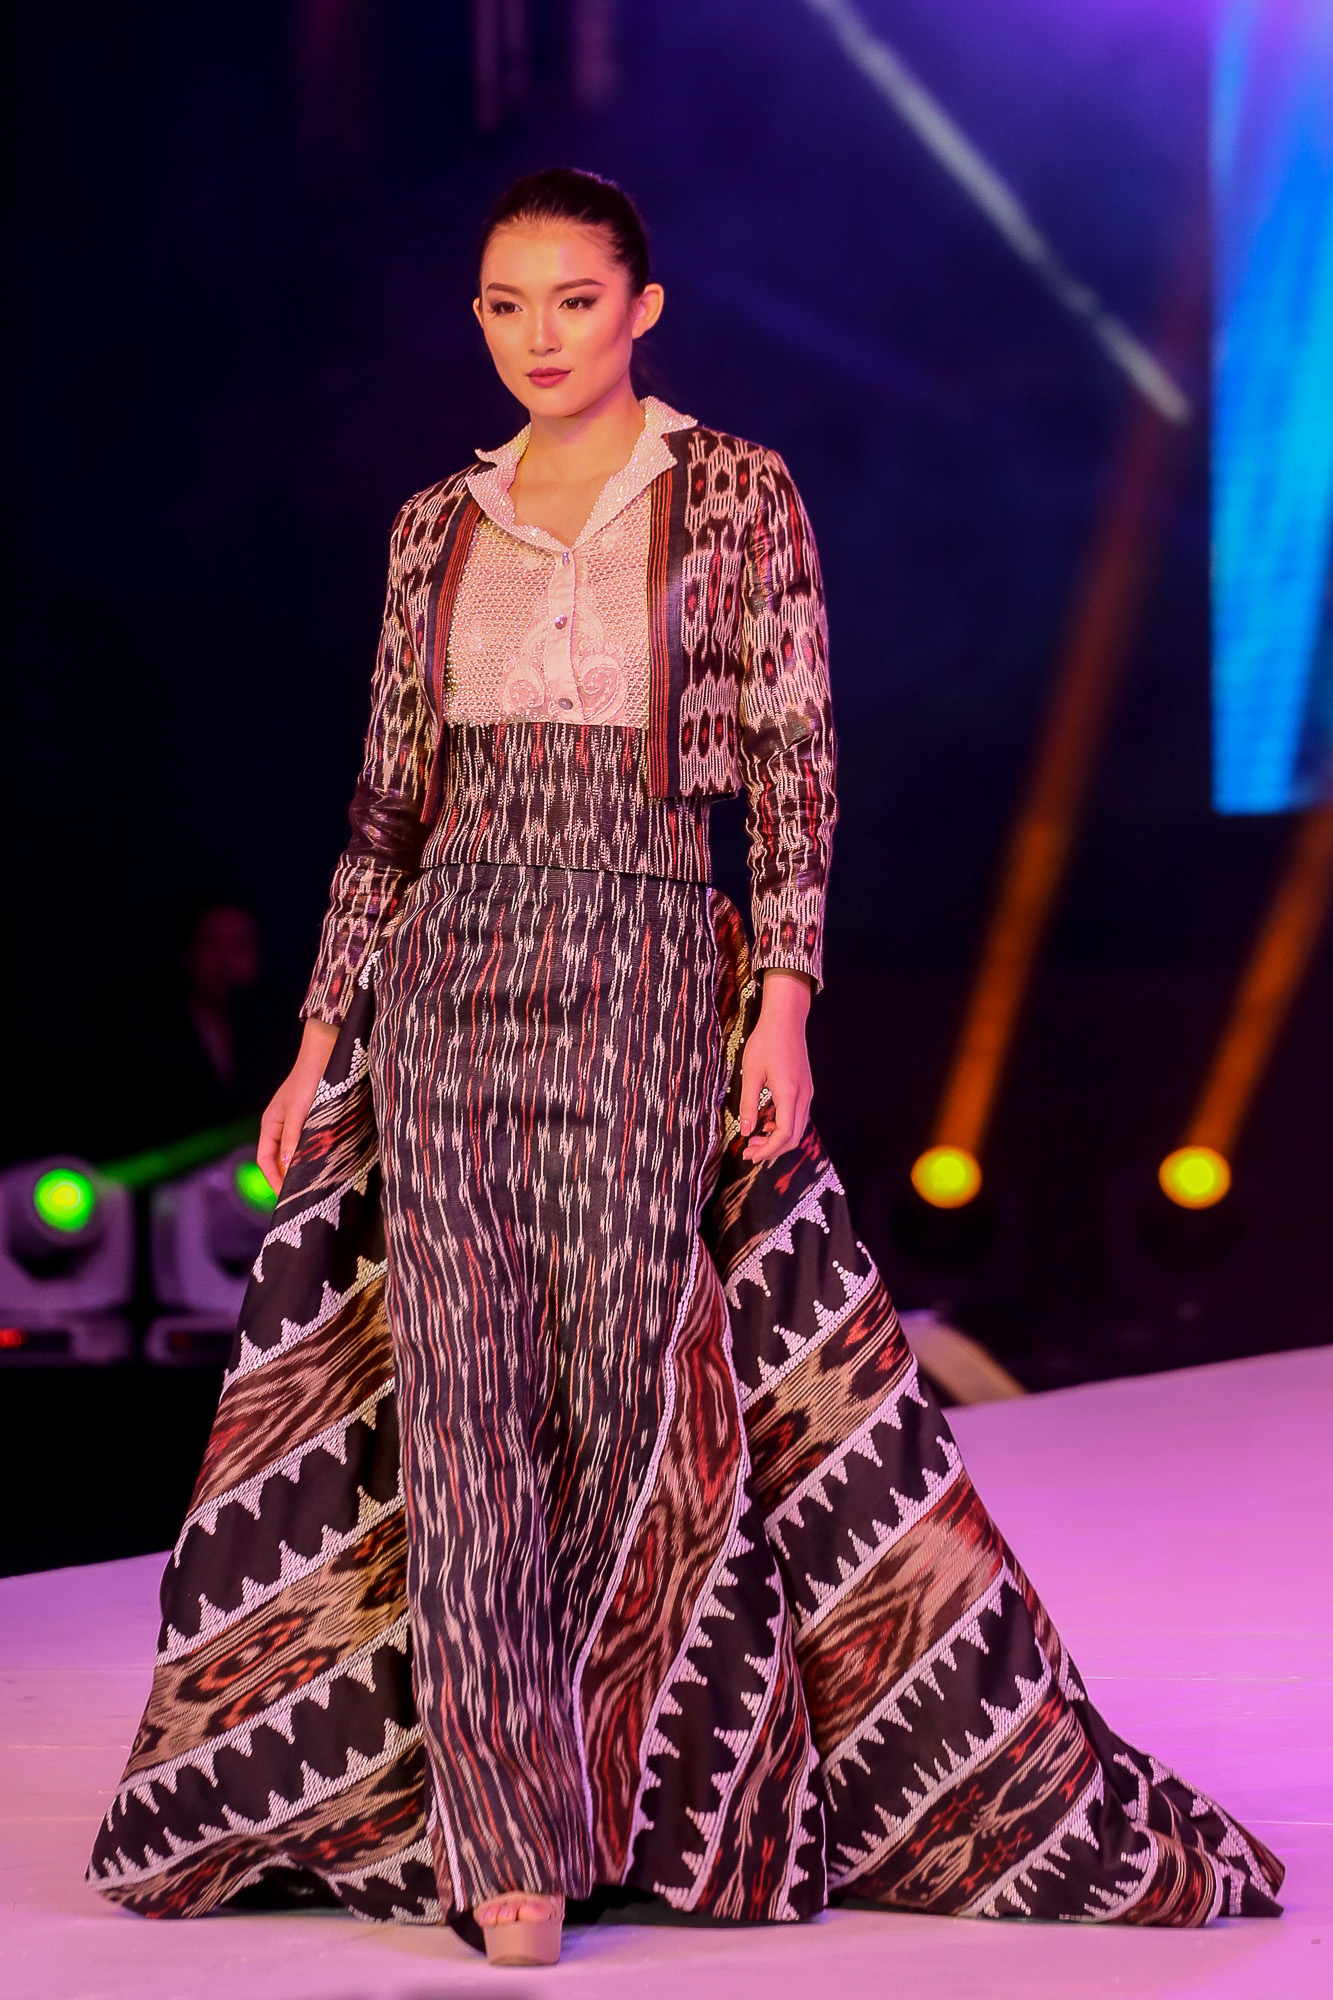 IN PHOTOS: Miss Universe 2016 ladies shine in Mindanao fabrics